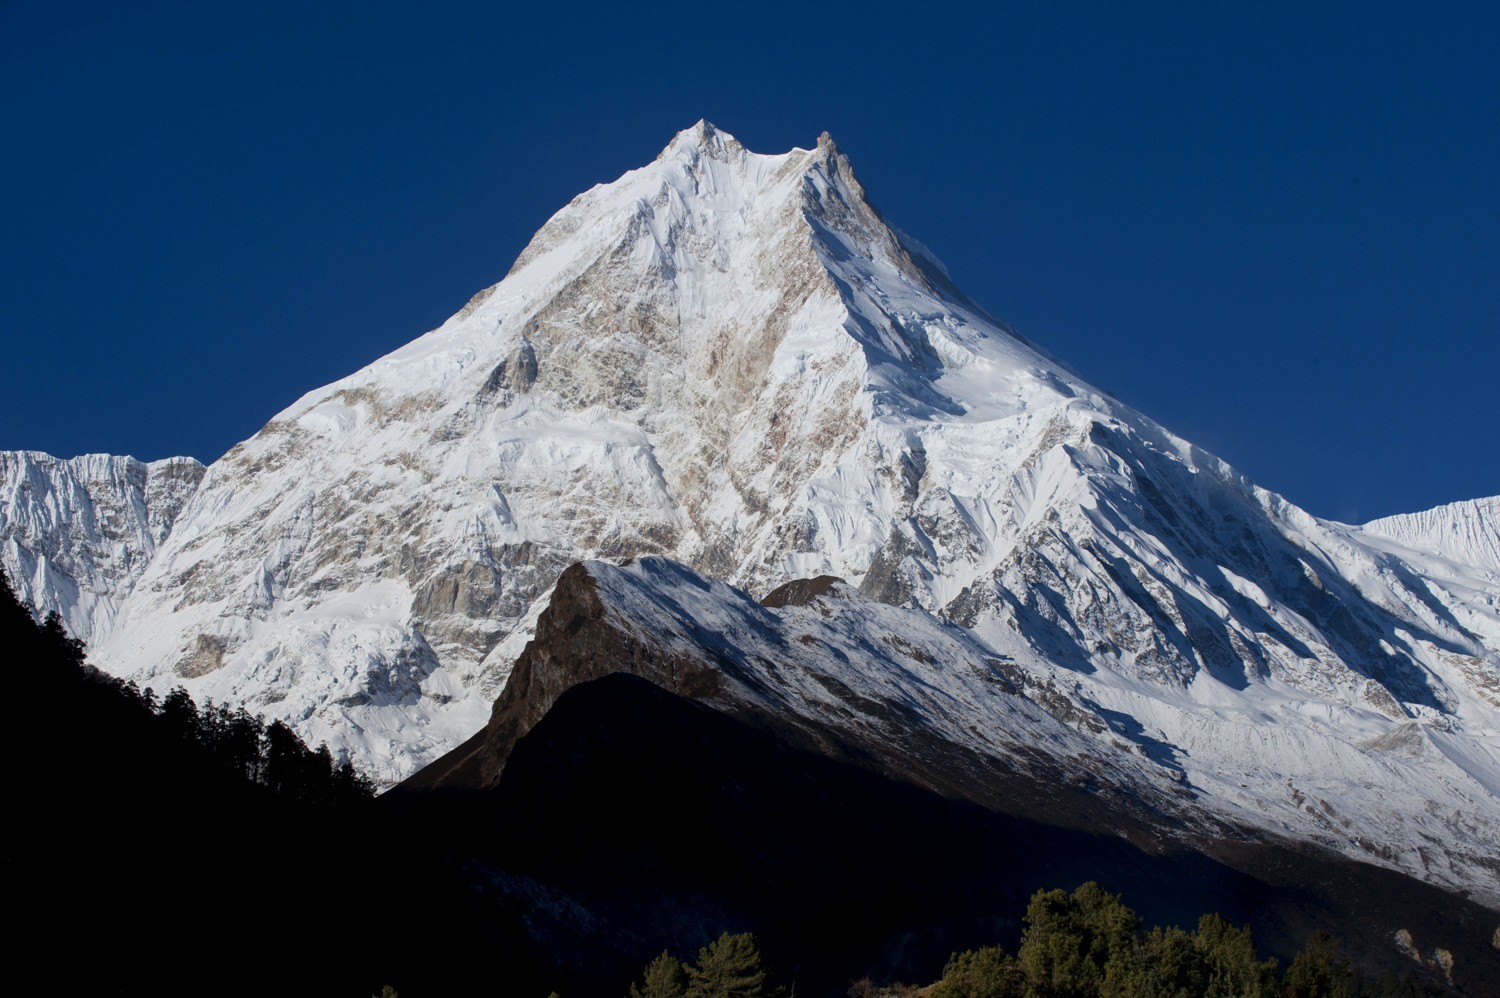 Mt Manaslu and its double summits tower over the surrounding valley on a clear day